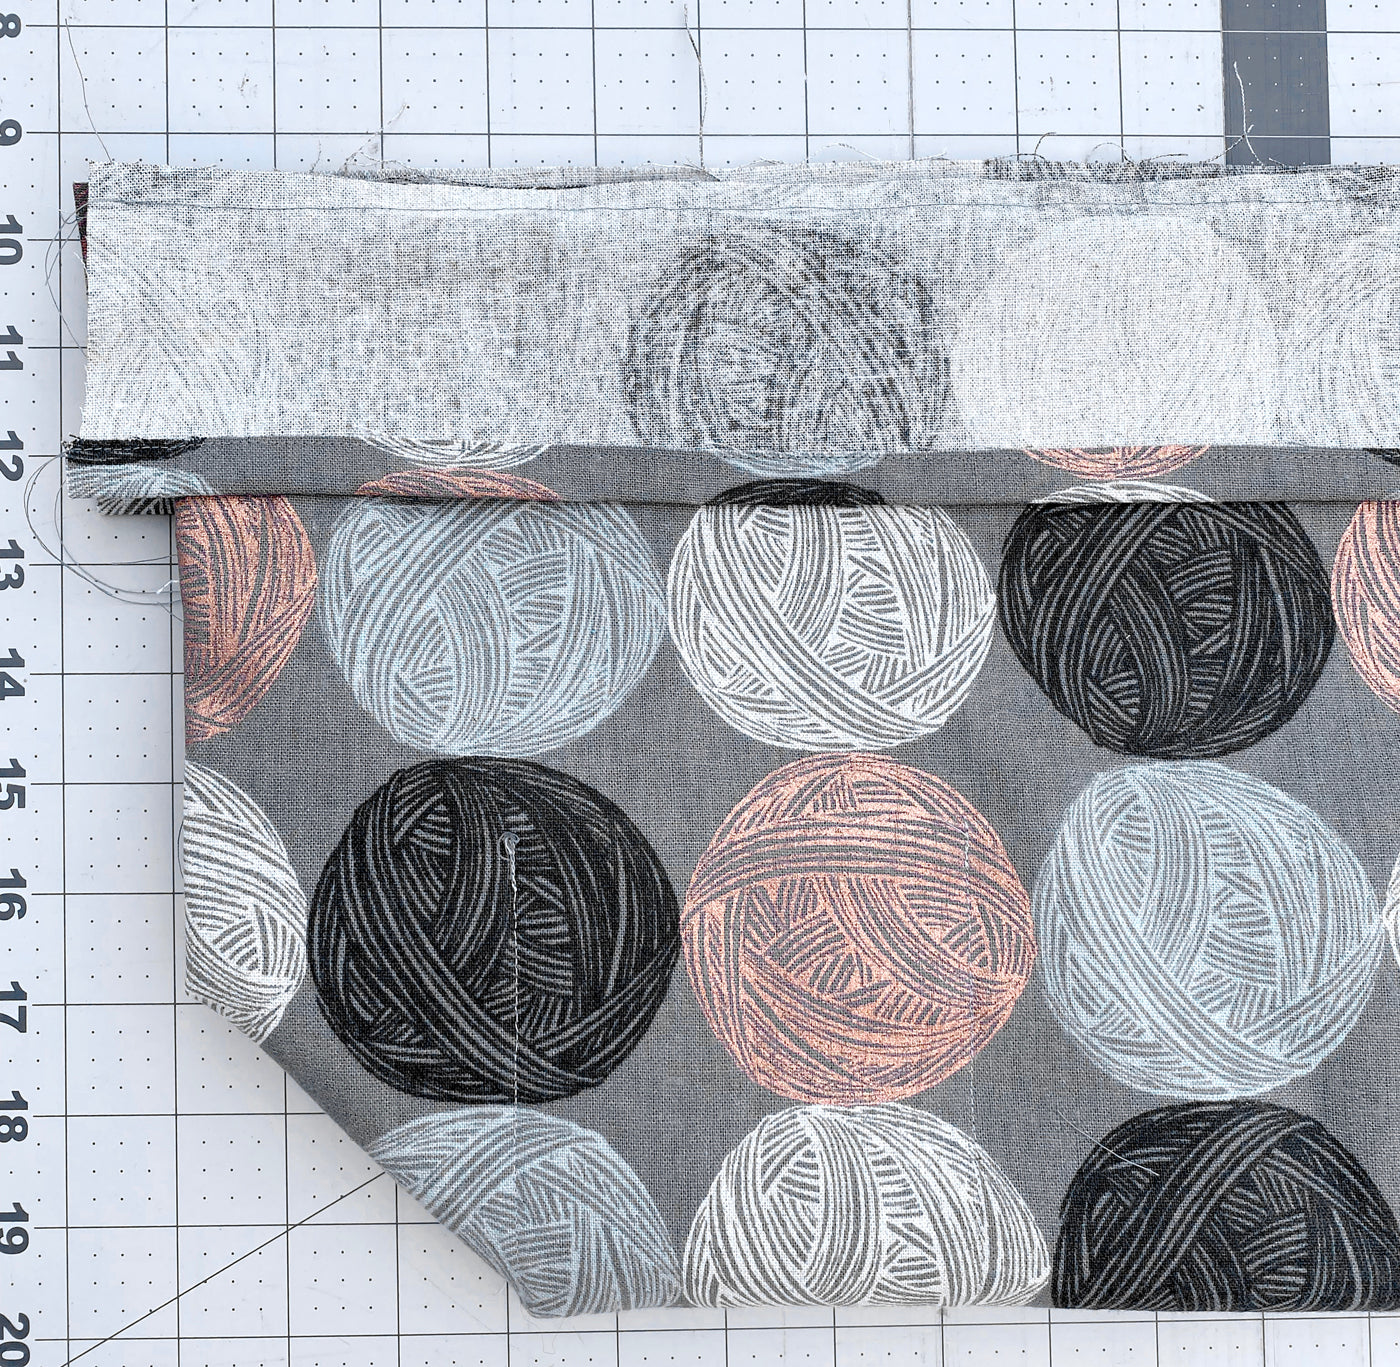 This is an image of a field bag being made, unfinished and laid on top of a cutting mat.